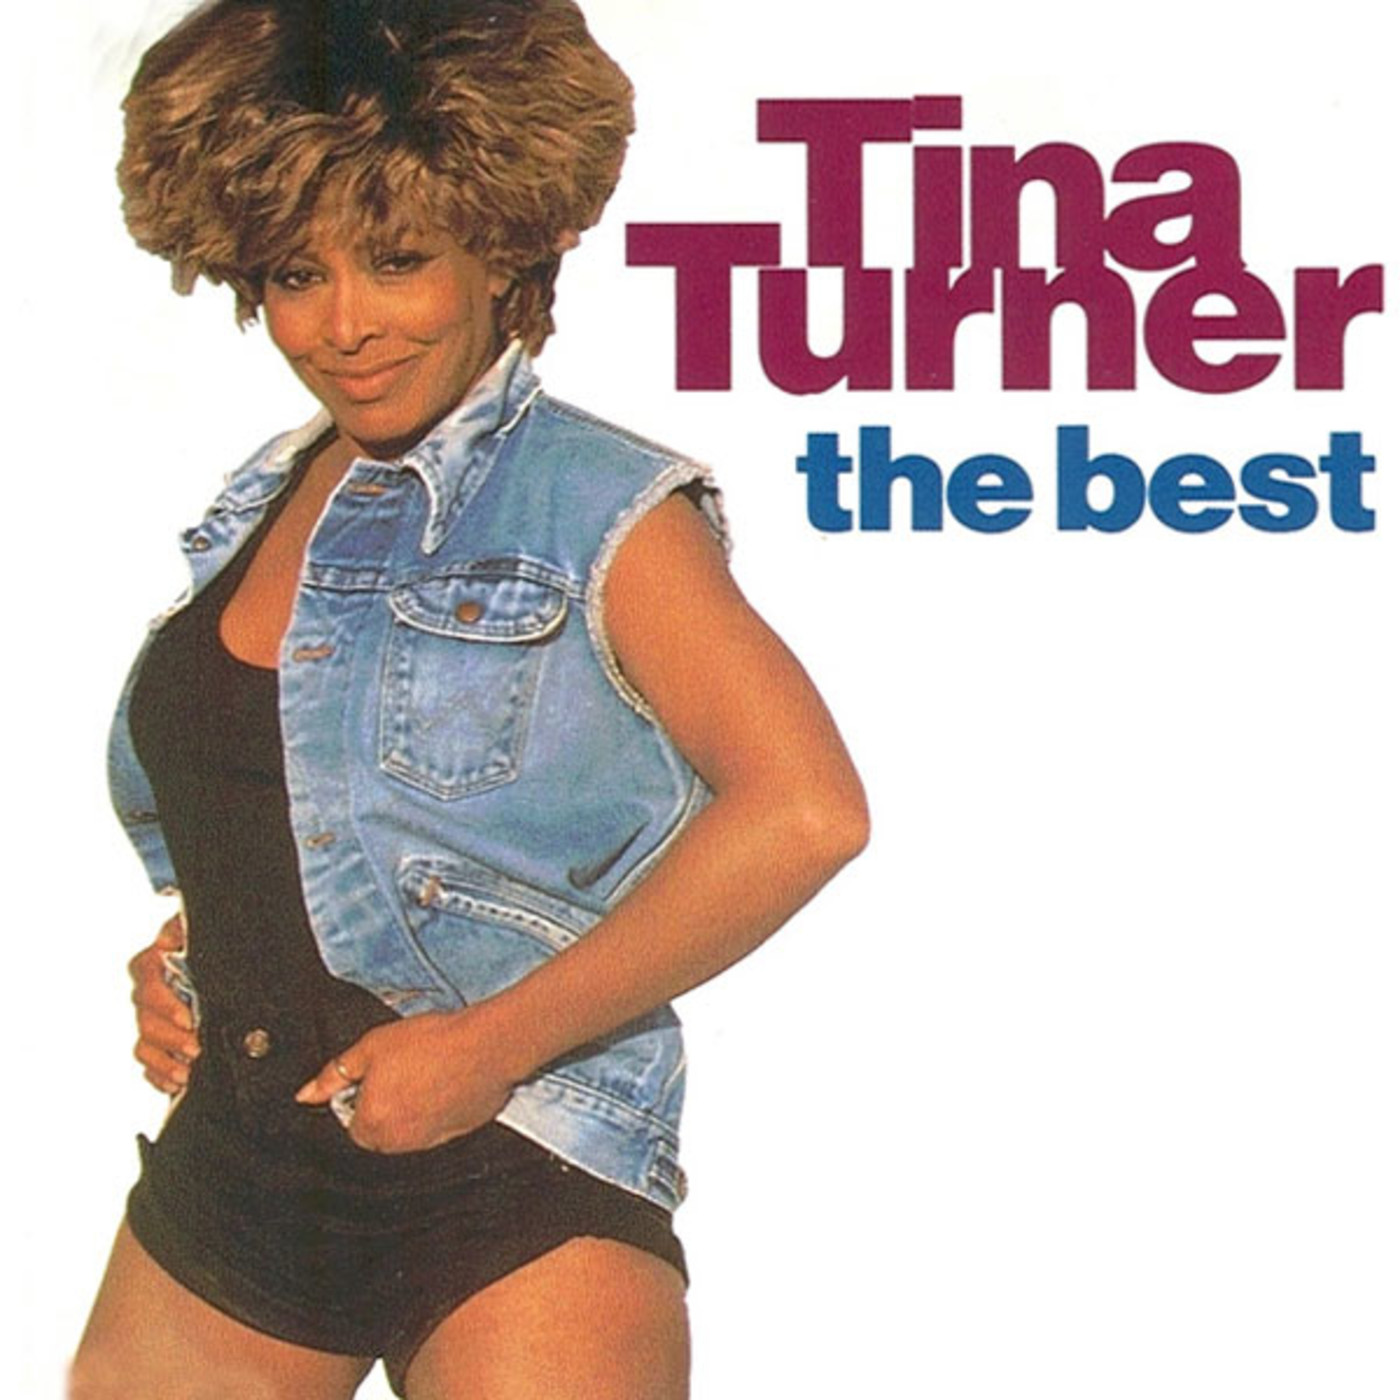 TINA TURNER - The best (1989)